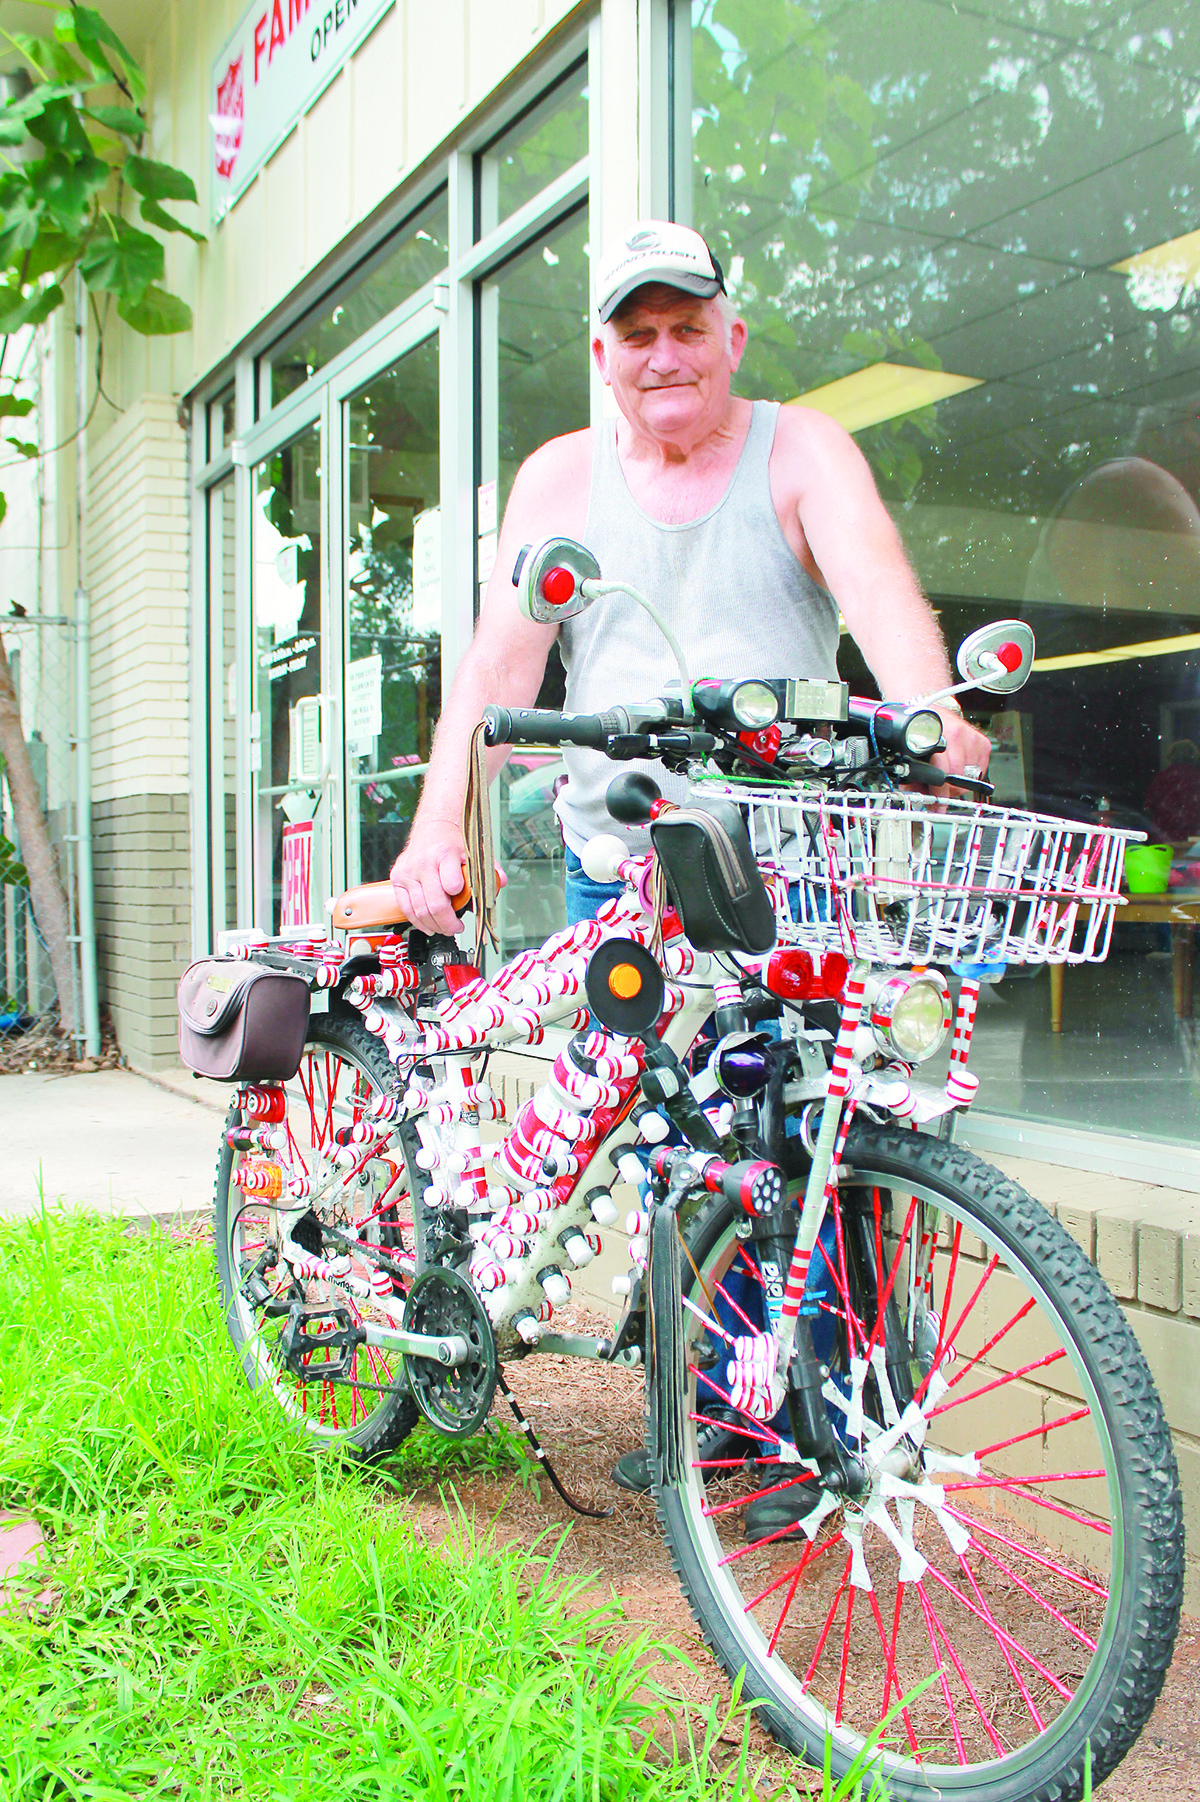 Lewis Ray Johnson, 75, stands with his unique bike outside of the Walker County Salvation Army building on July 9.